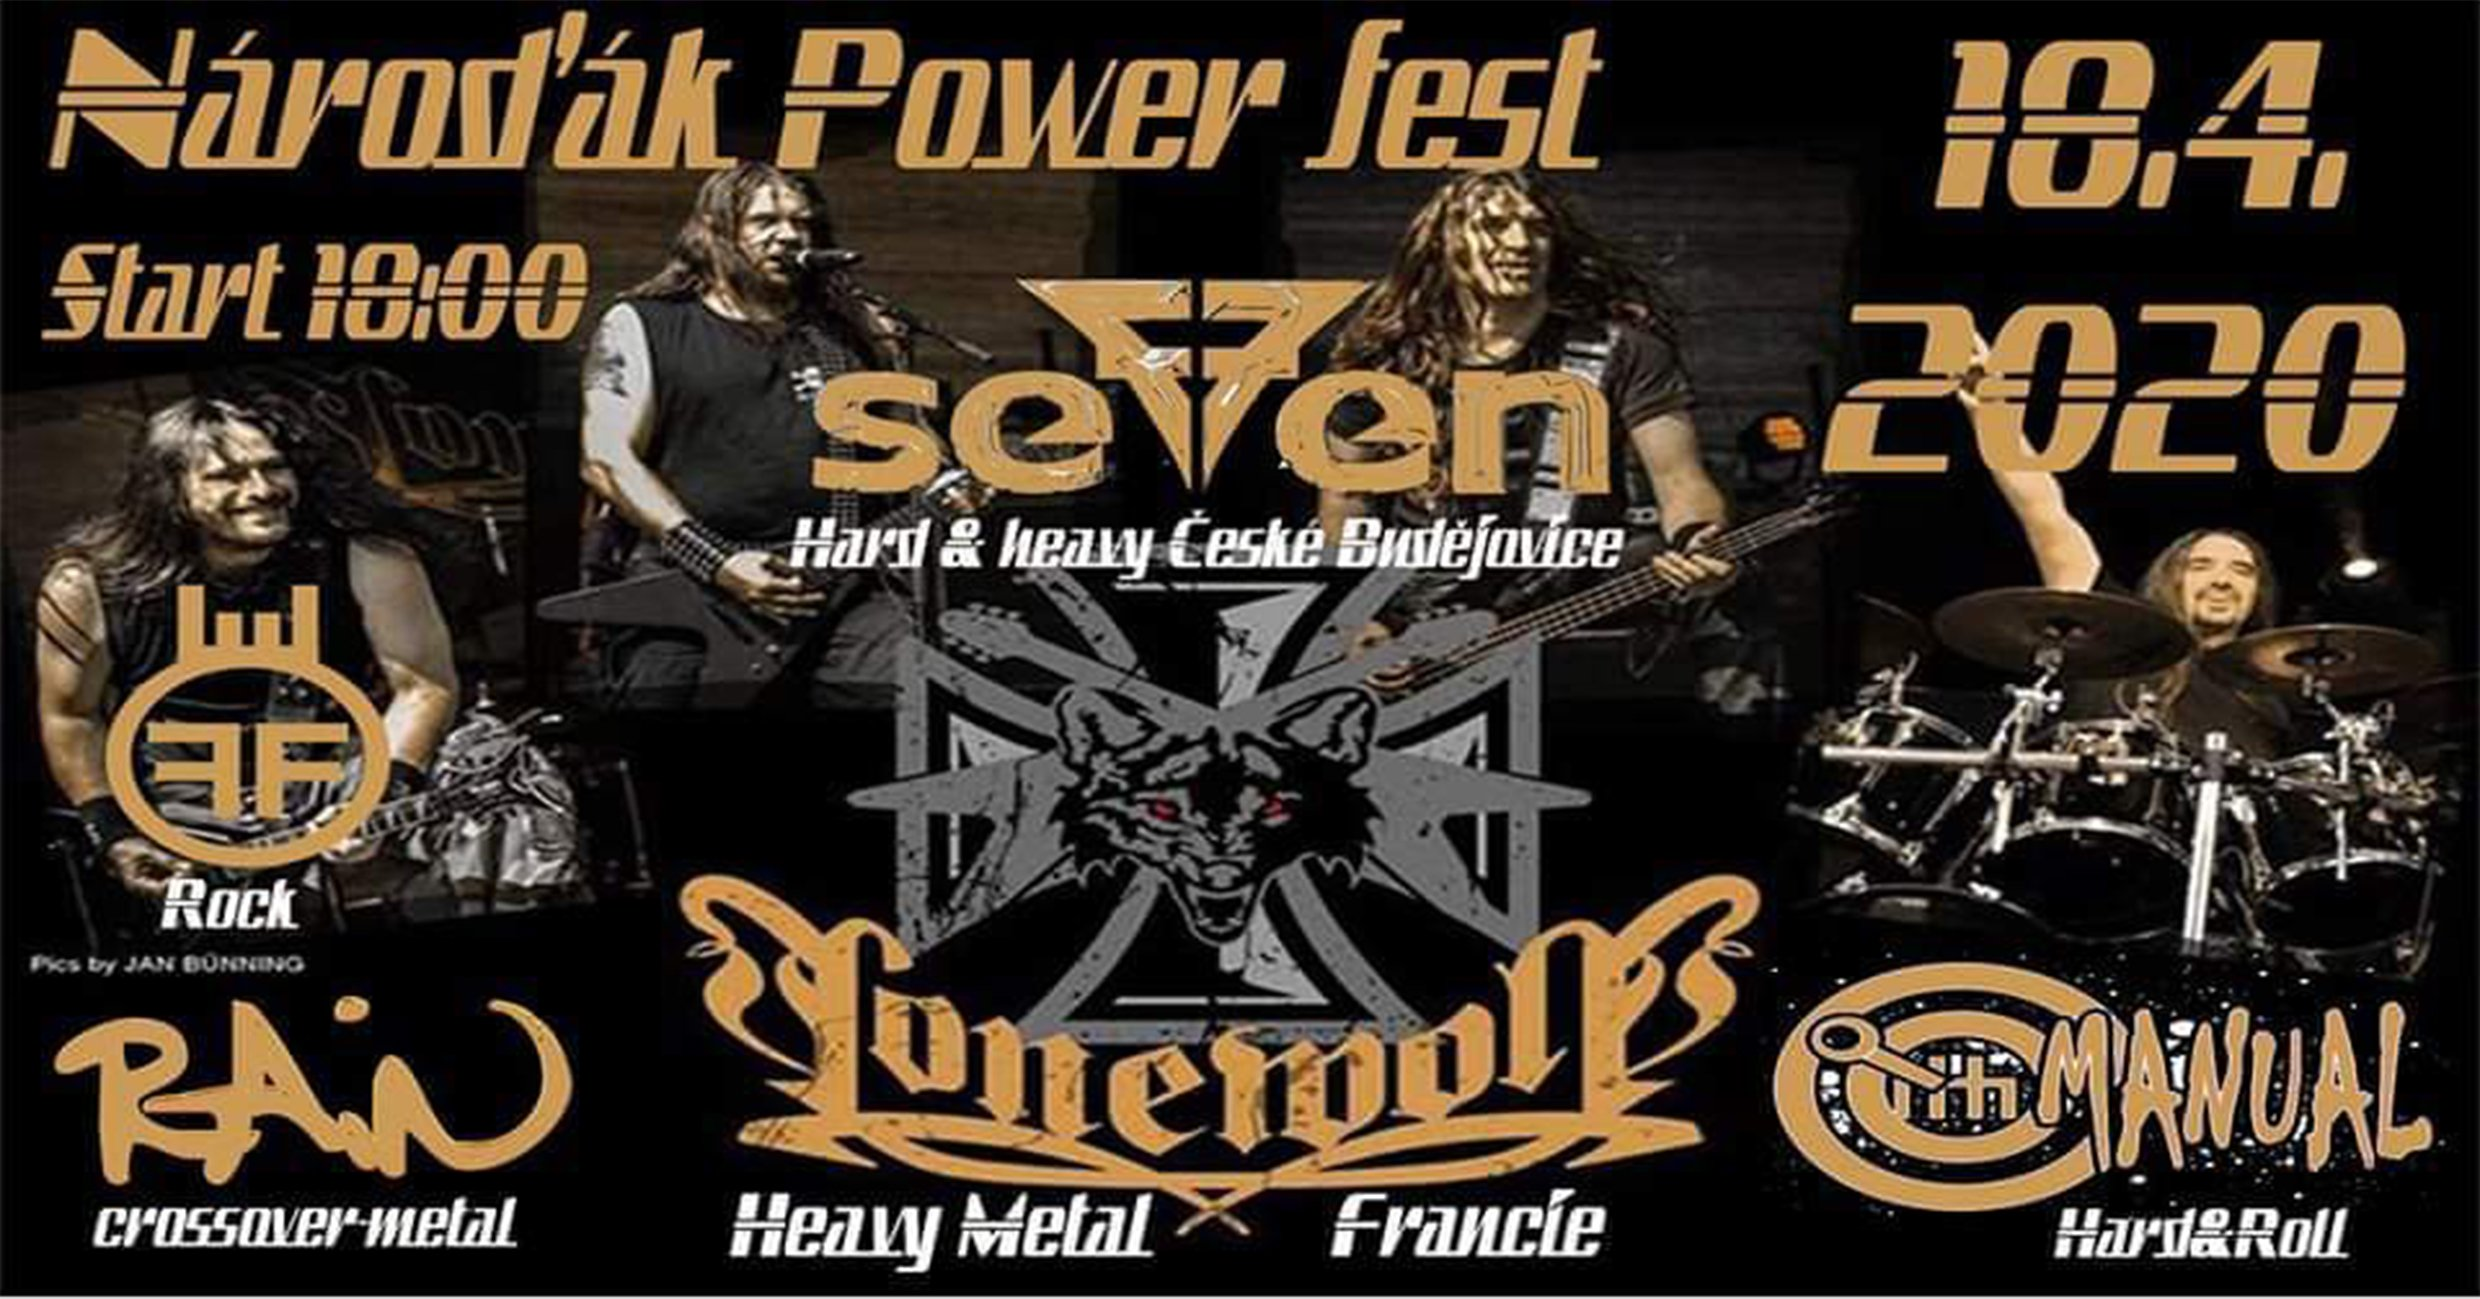 Naroďák Power Fest